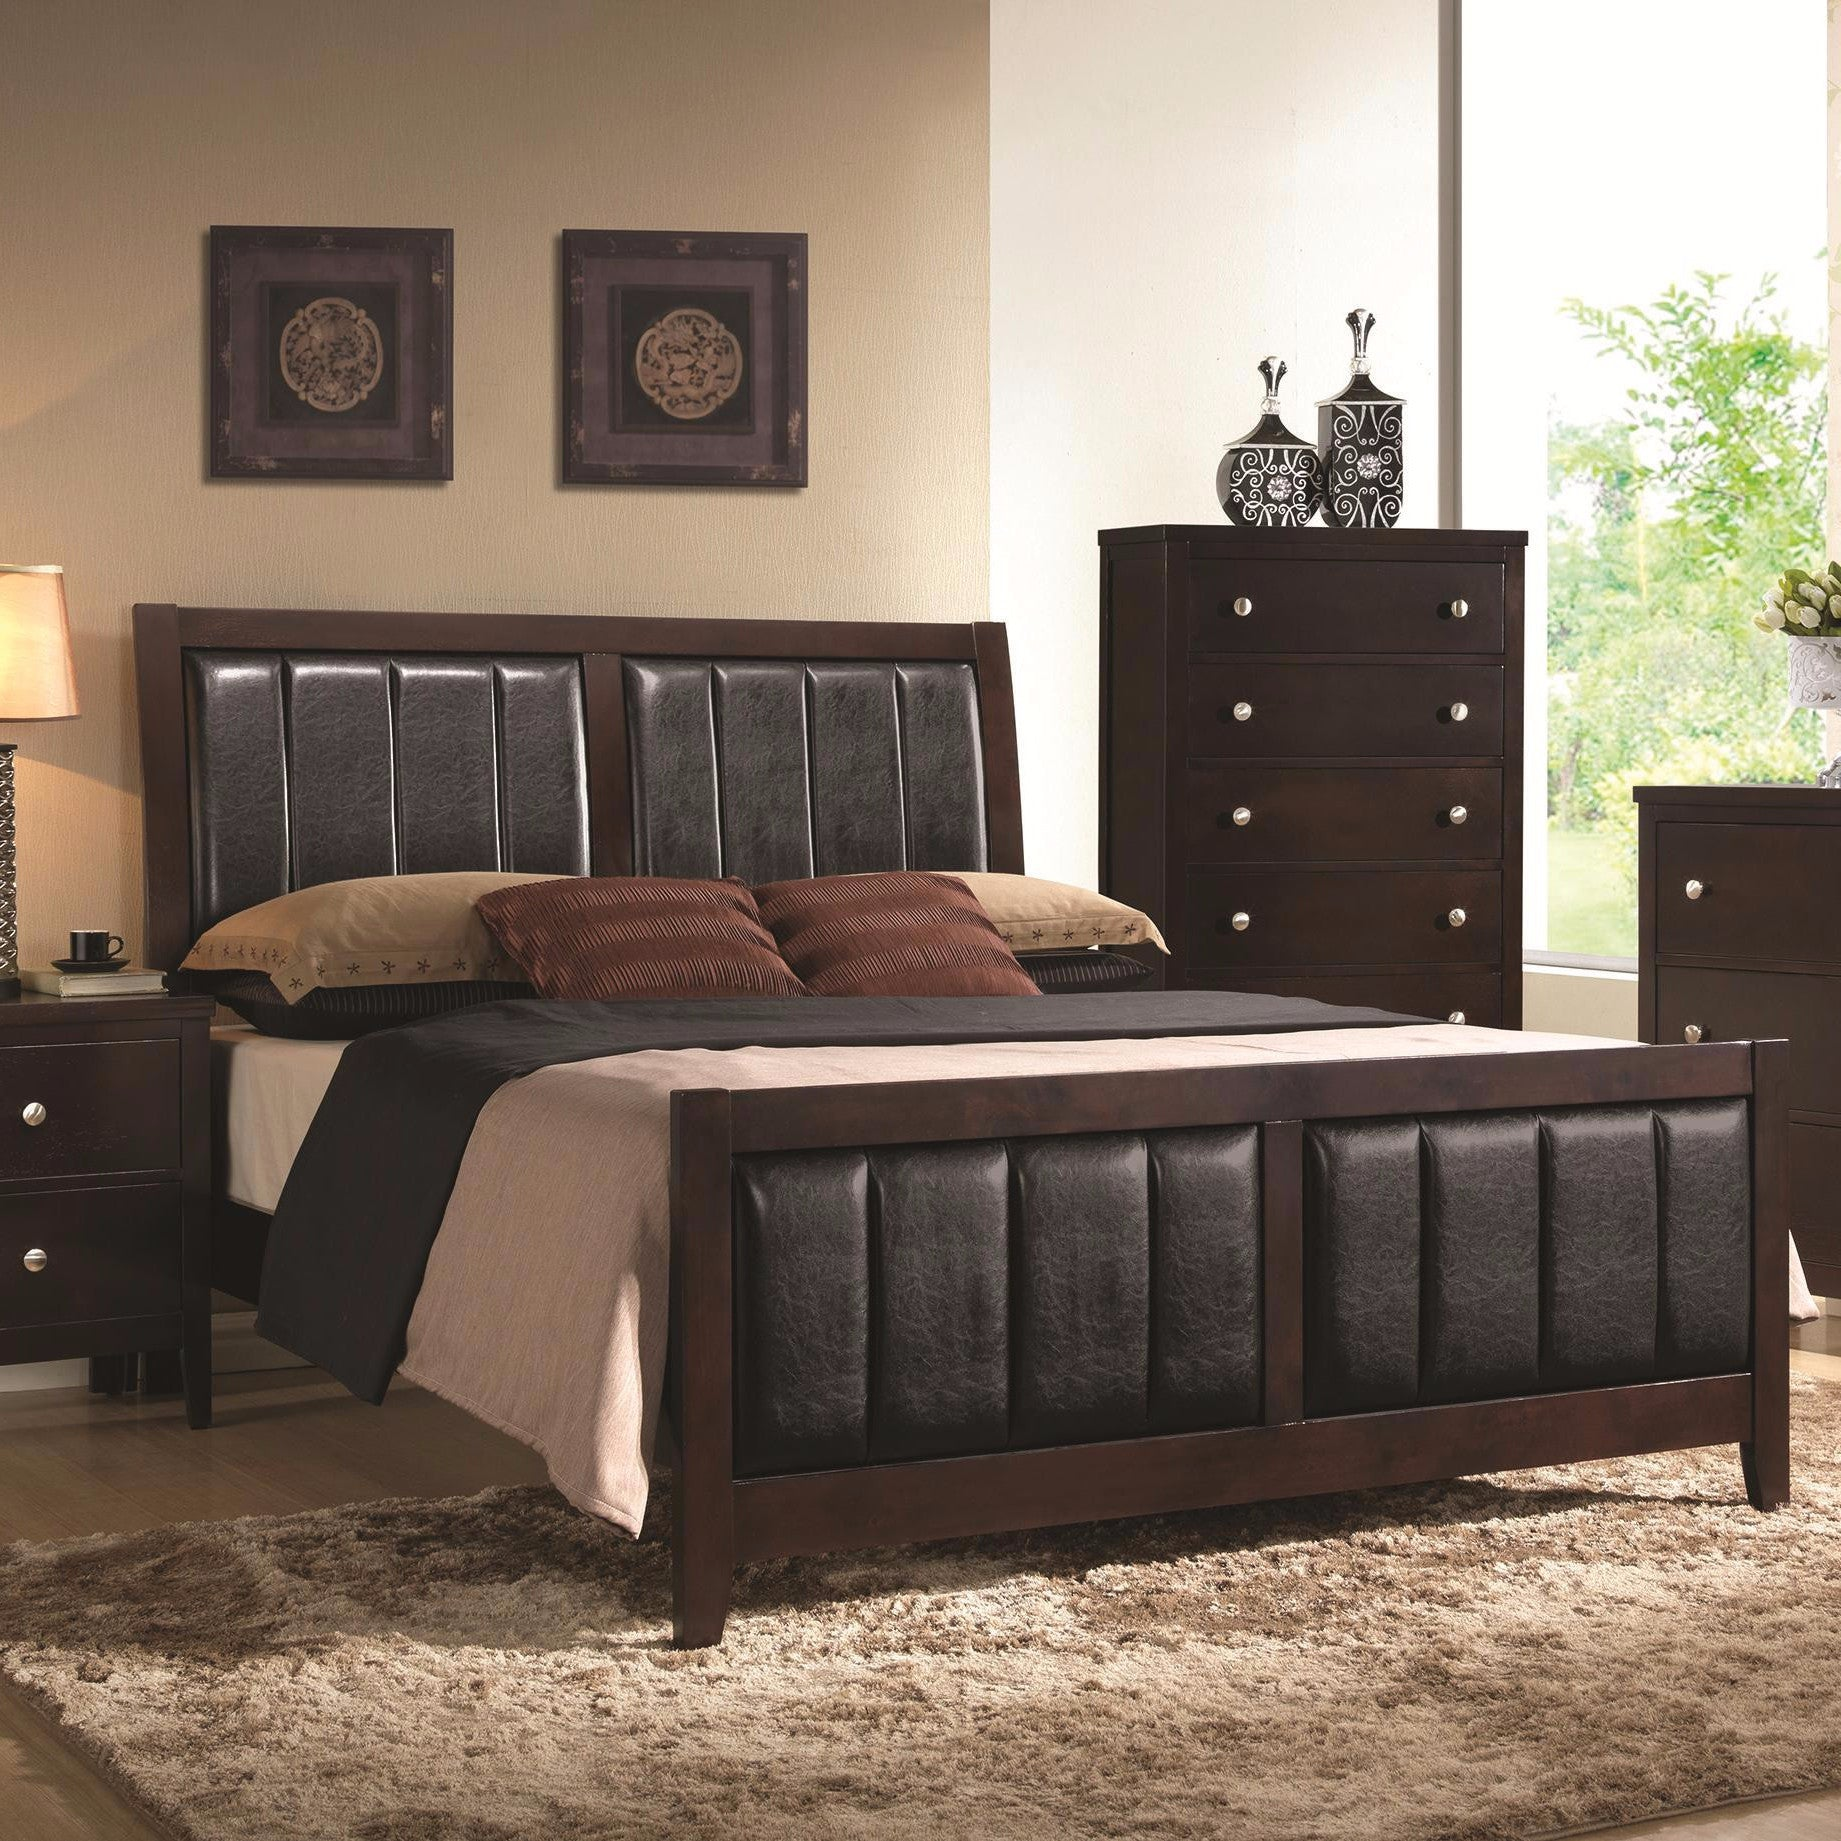 Bed And Dresser Sets Home Interiors Designs